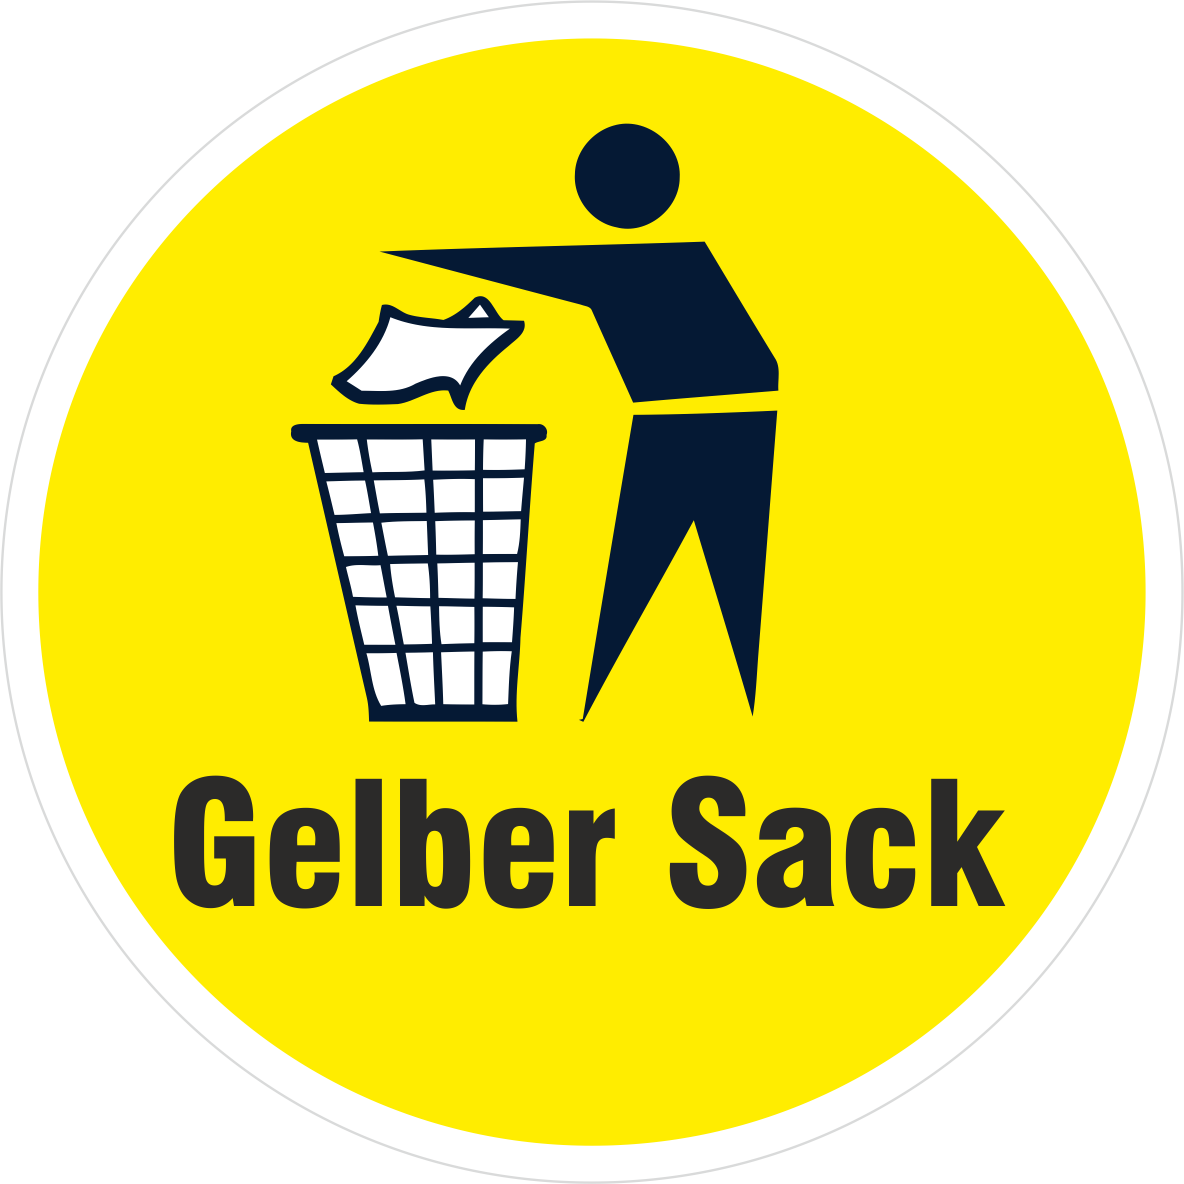 Gelbersack on JumPic com